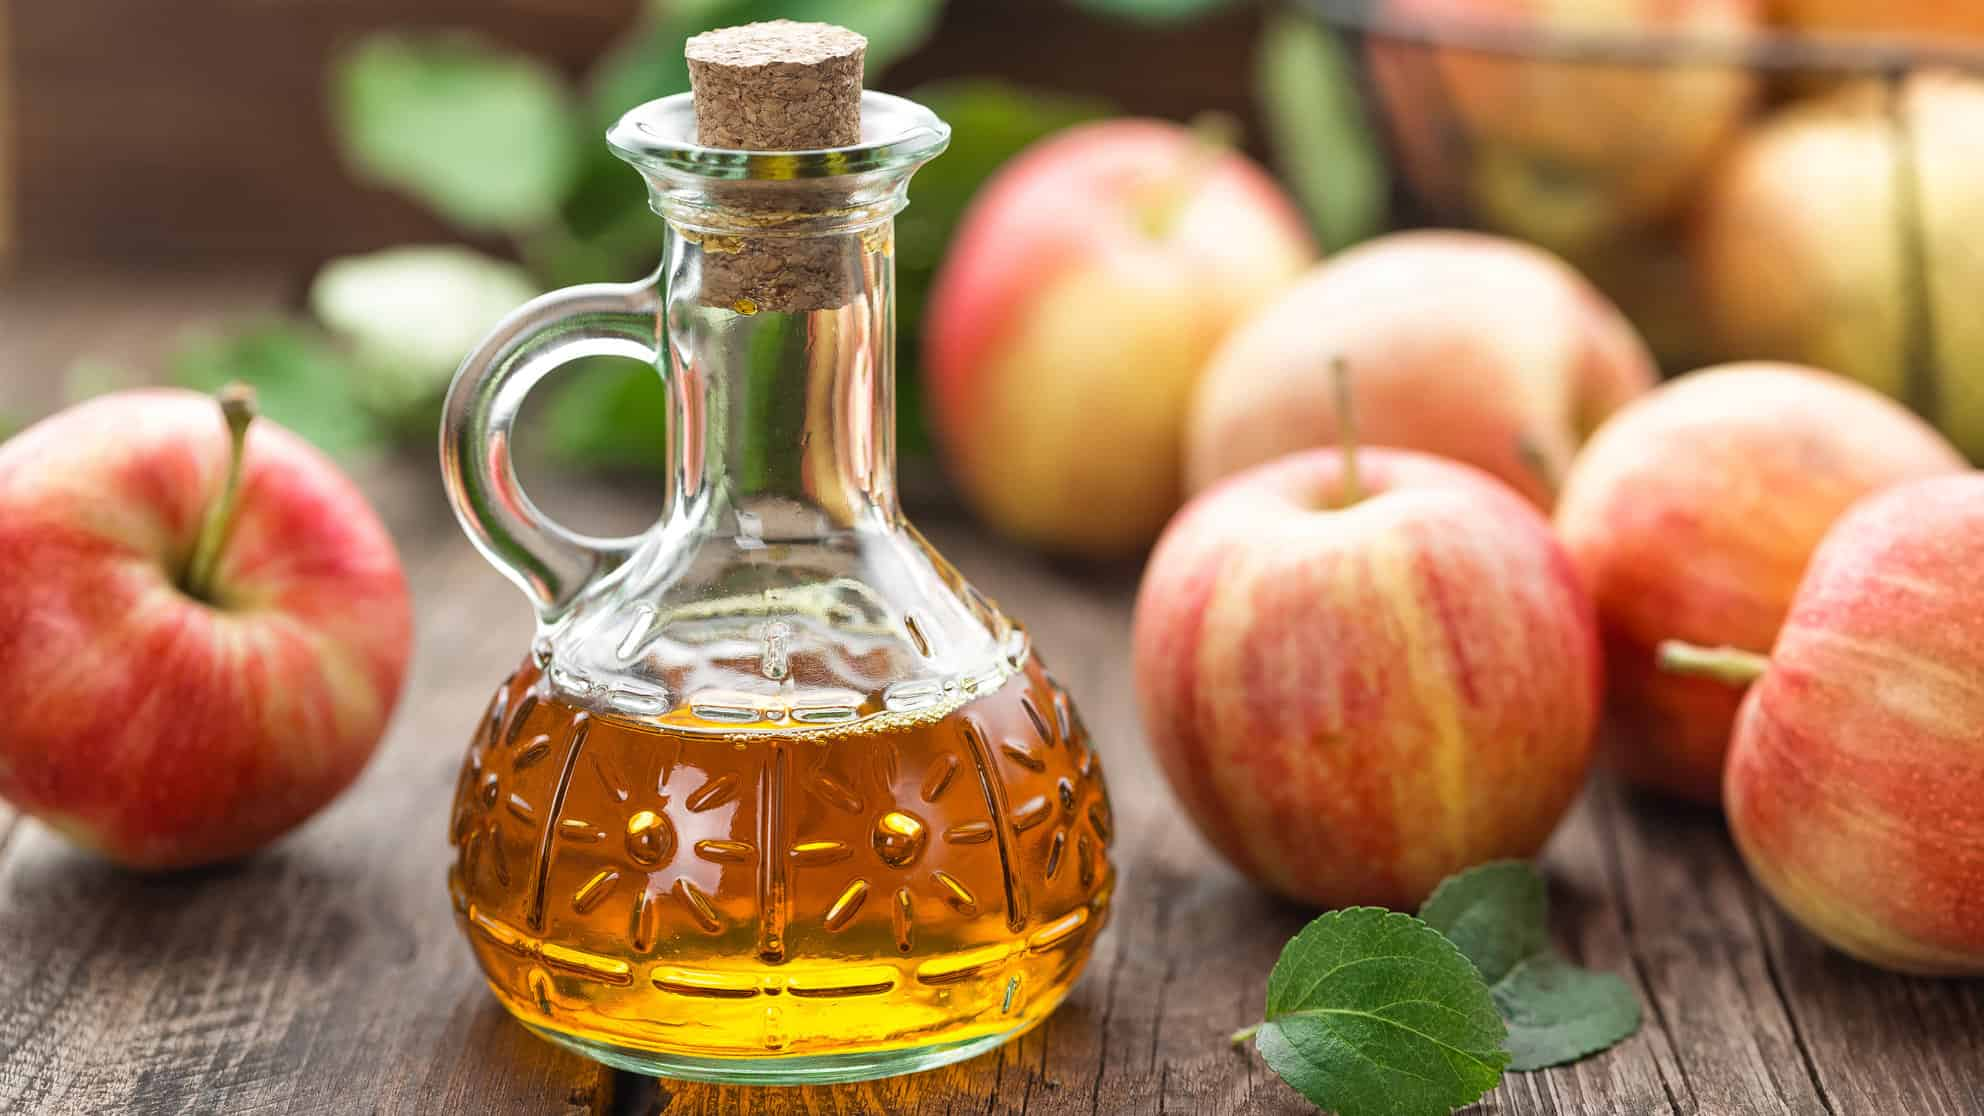 Best uses of apple cider vinegar